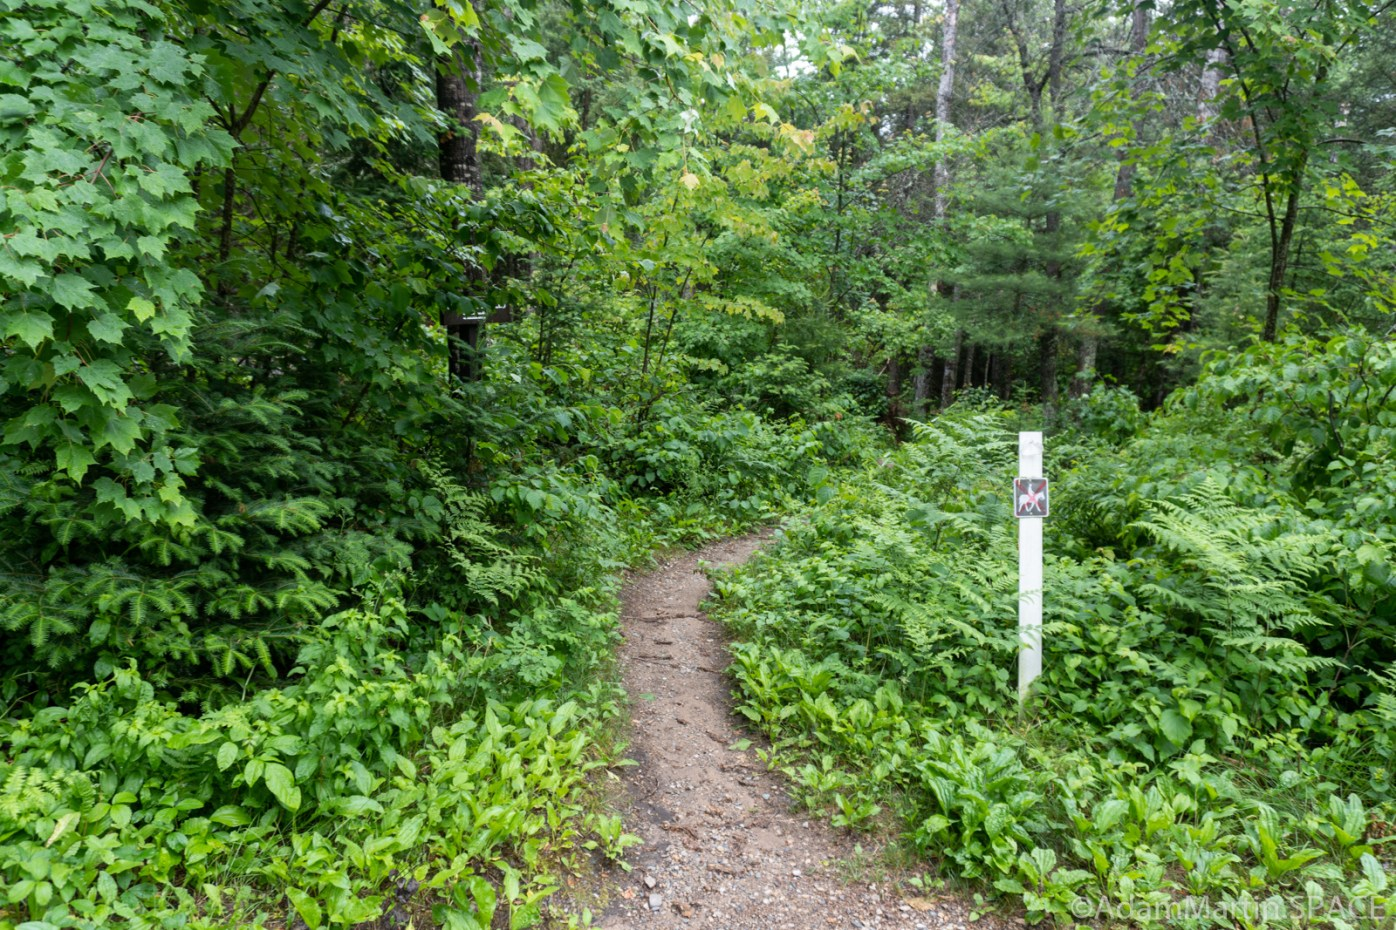 Horseshoe Falls - Trail starts in very good condition